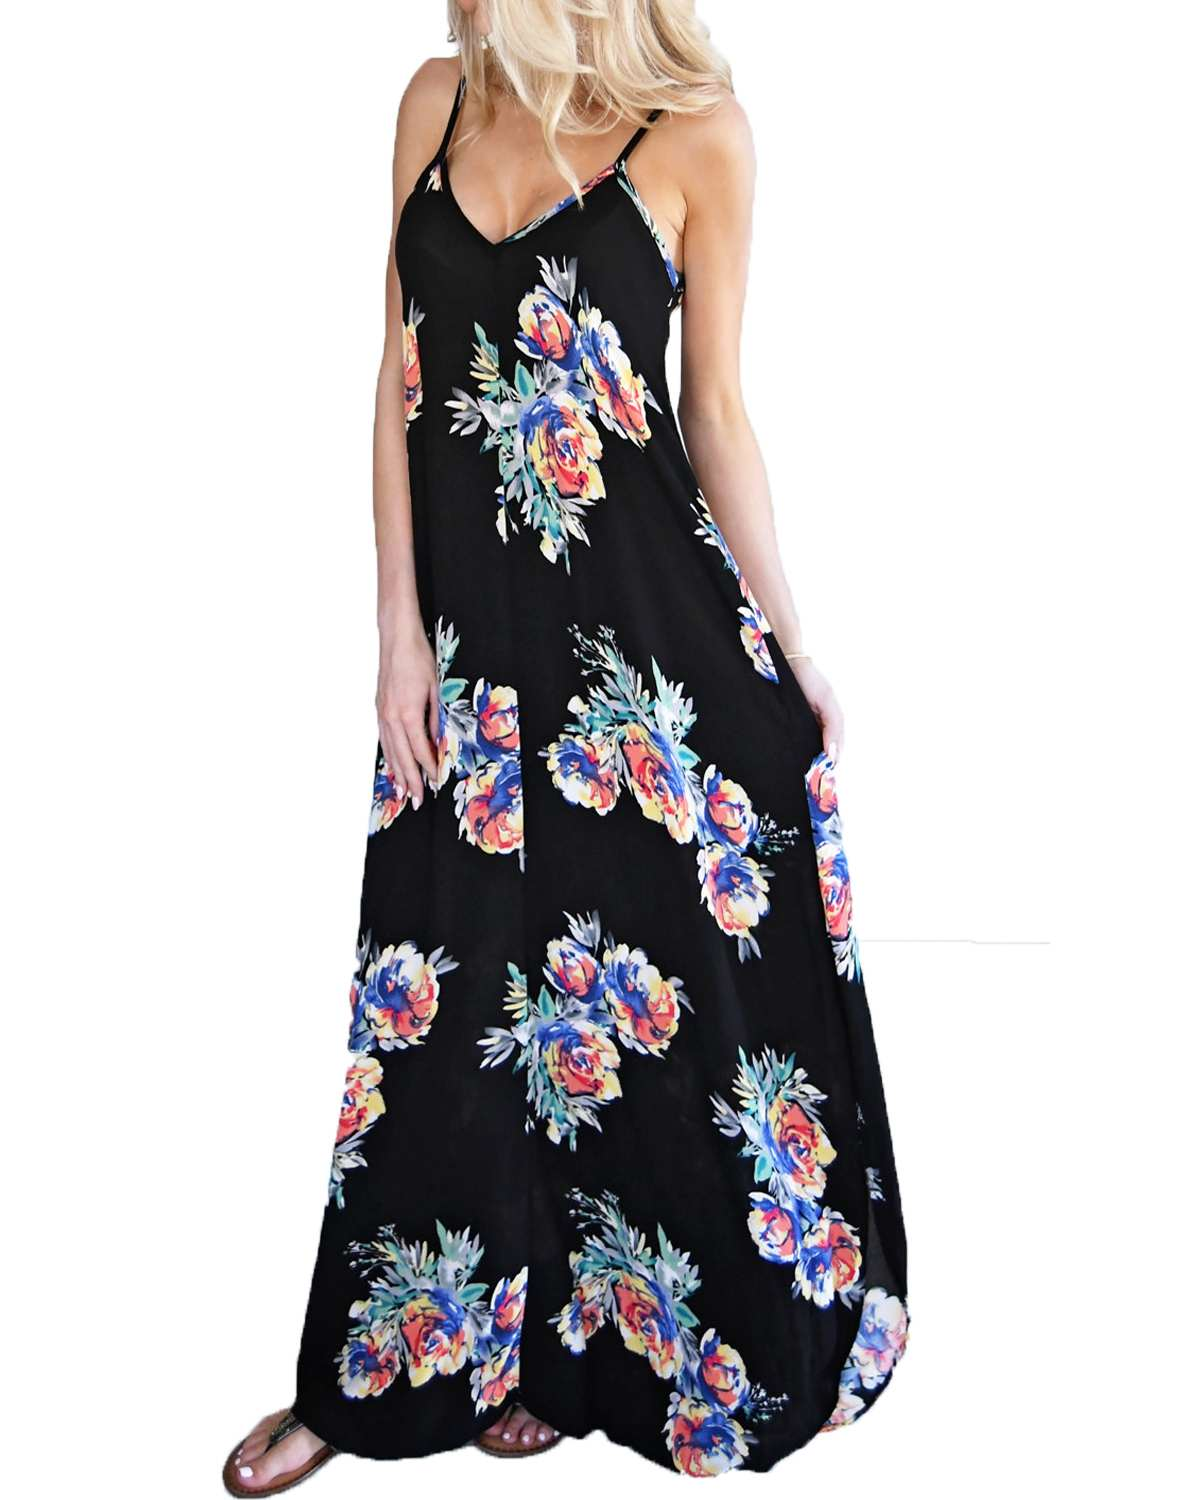 Casual Loose Printed Dresses Women Summer Ladies Sexy V Neck Strapless Sleeveless Bohemian Beach Maxi Long Dresses Vestidos 2019